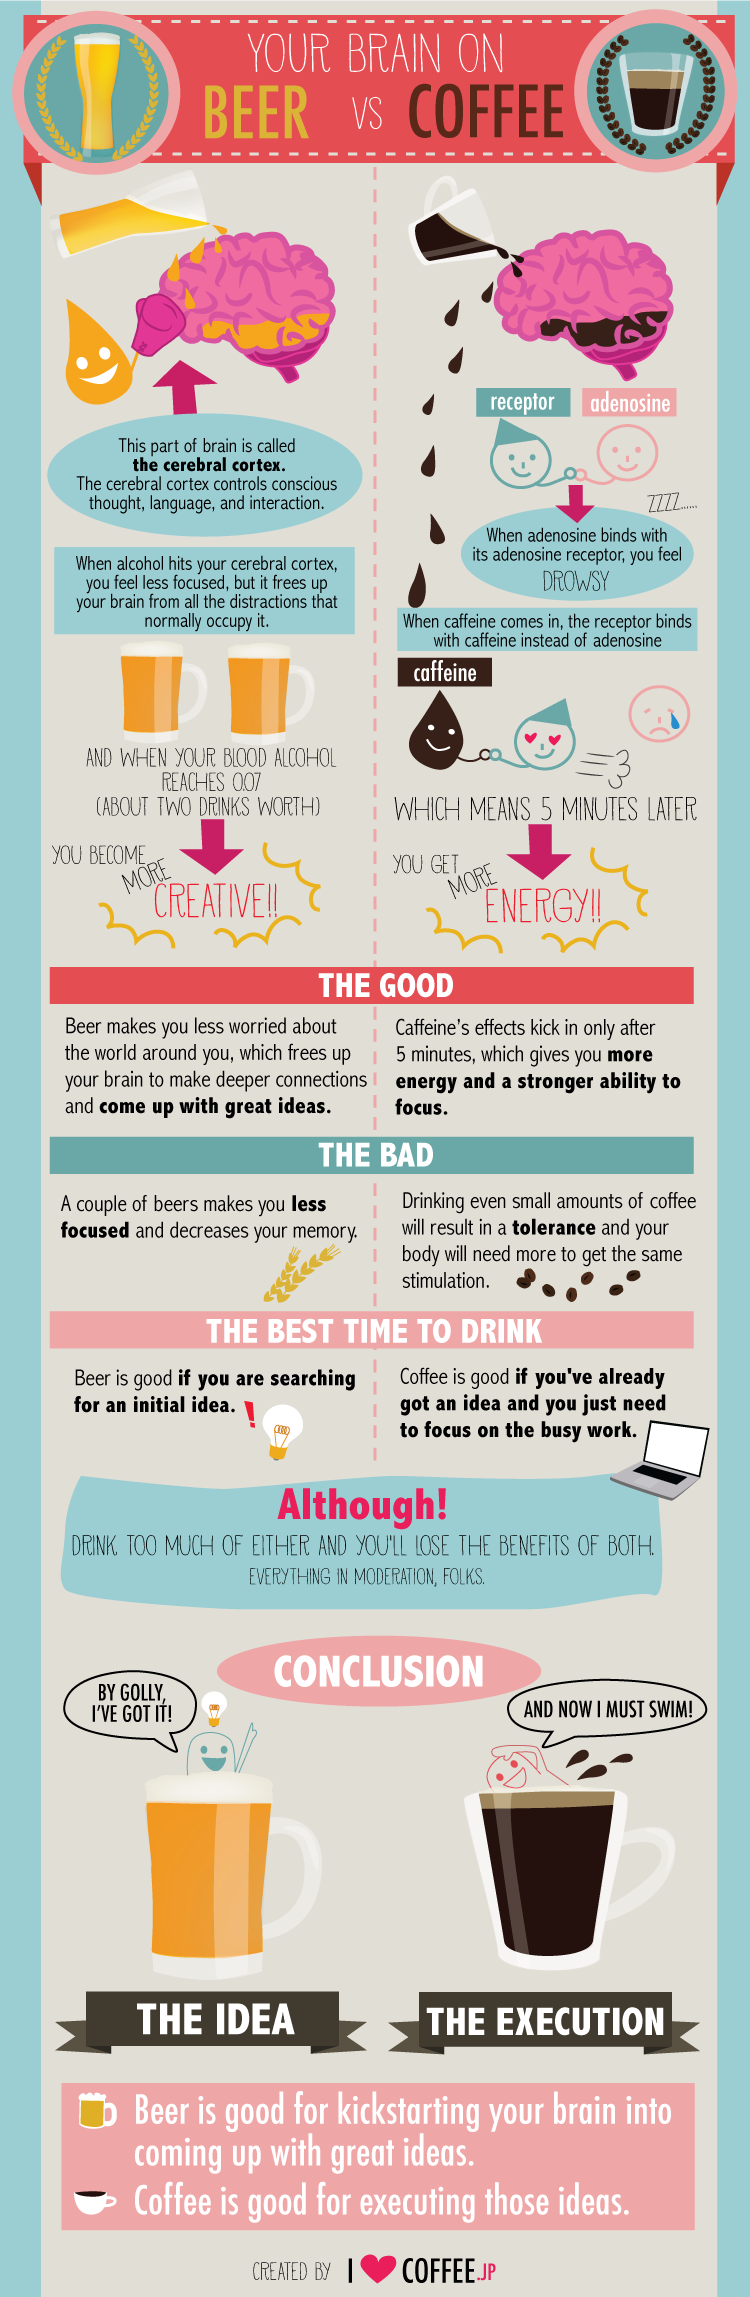 Your Brain On Beer Vs Coffee